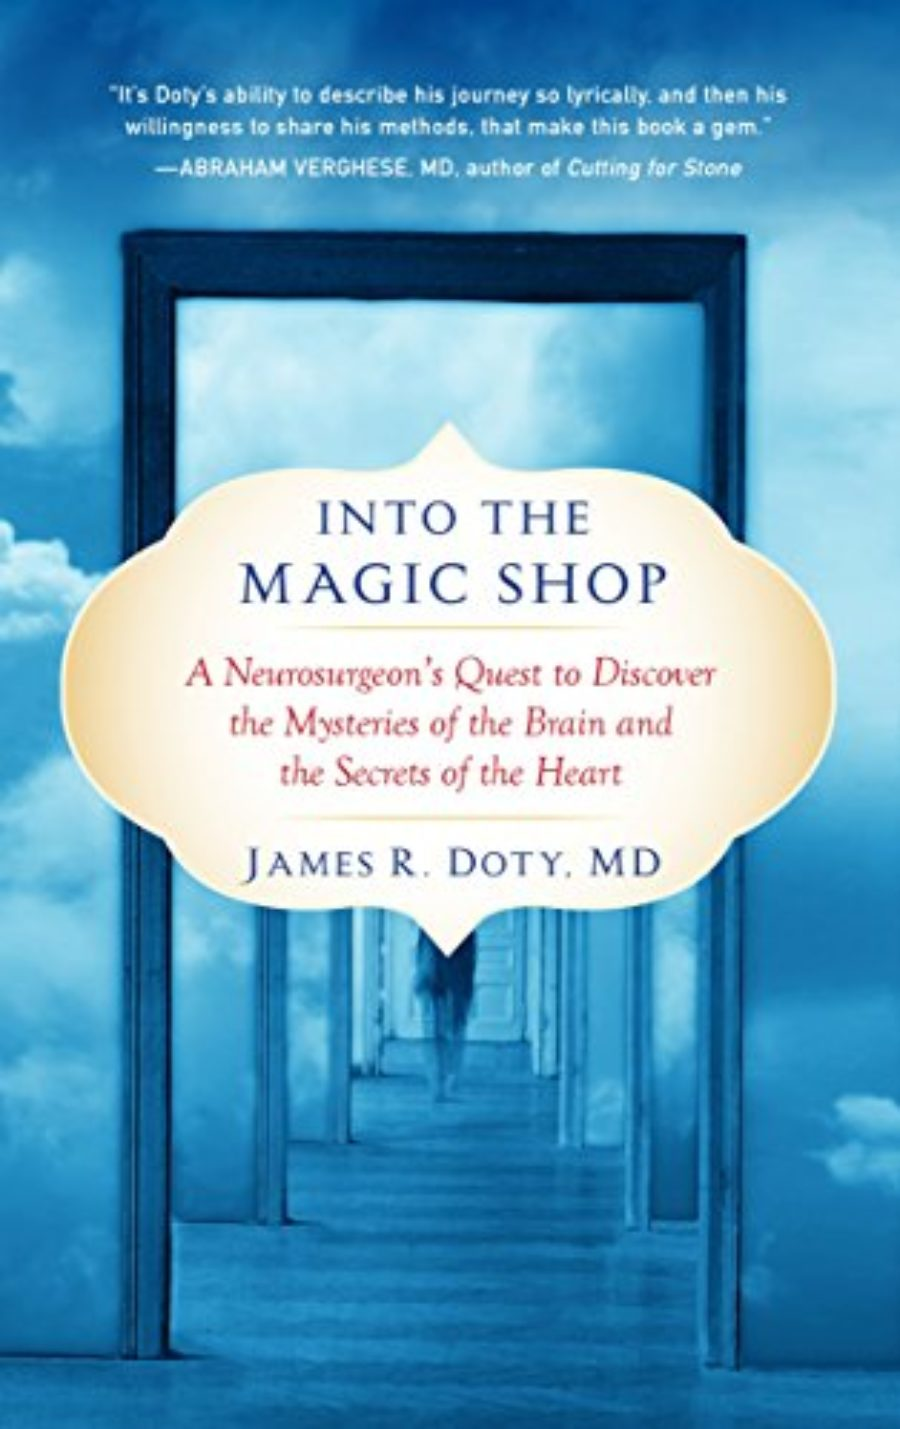 Cover of Into the Magic Shop: A Neurosurgeon's Quest to Discover the Mysteries of the Brain and the Secrets of the Heart